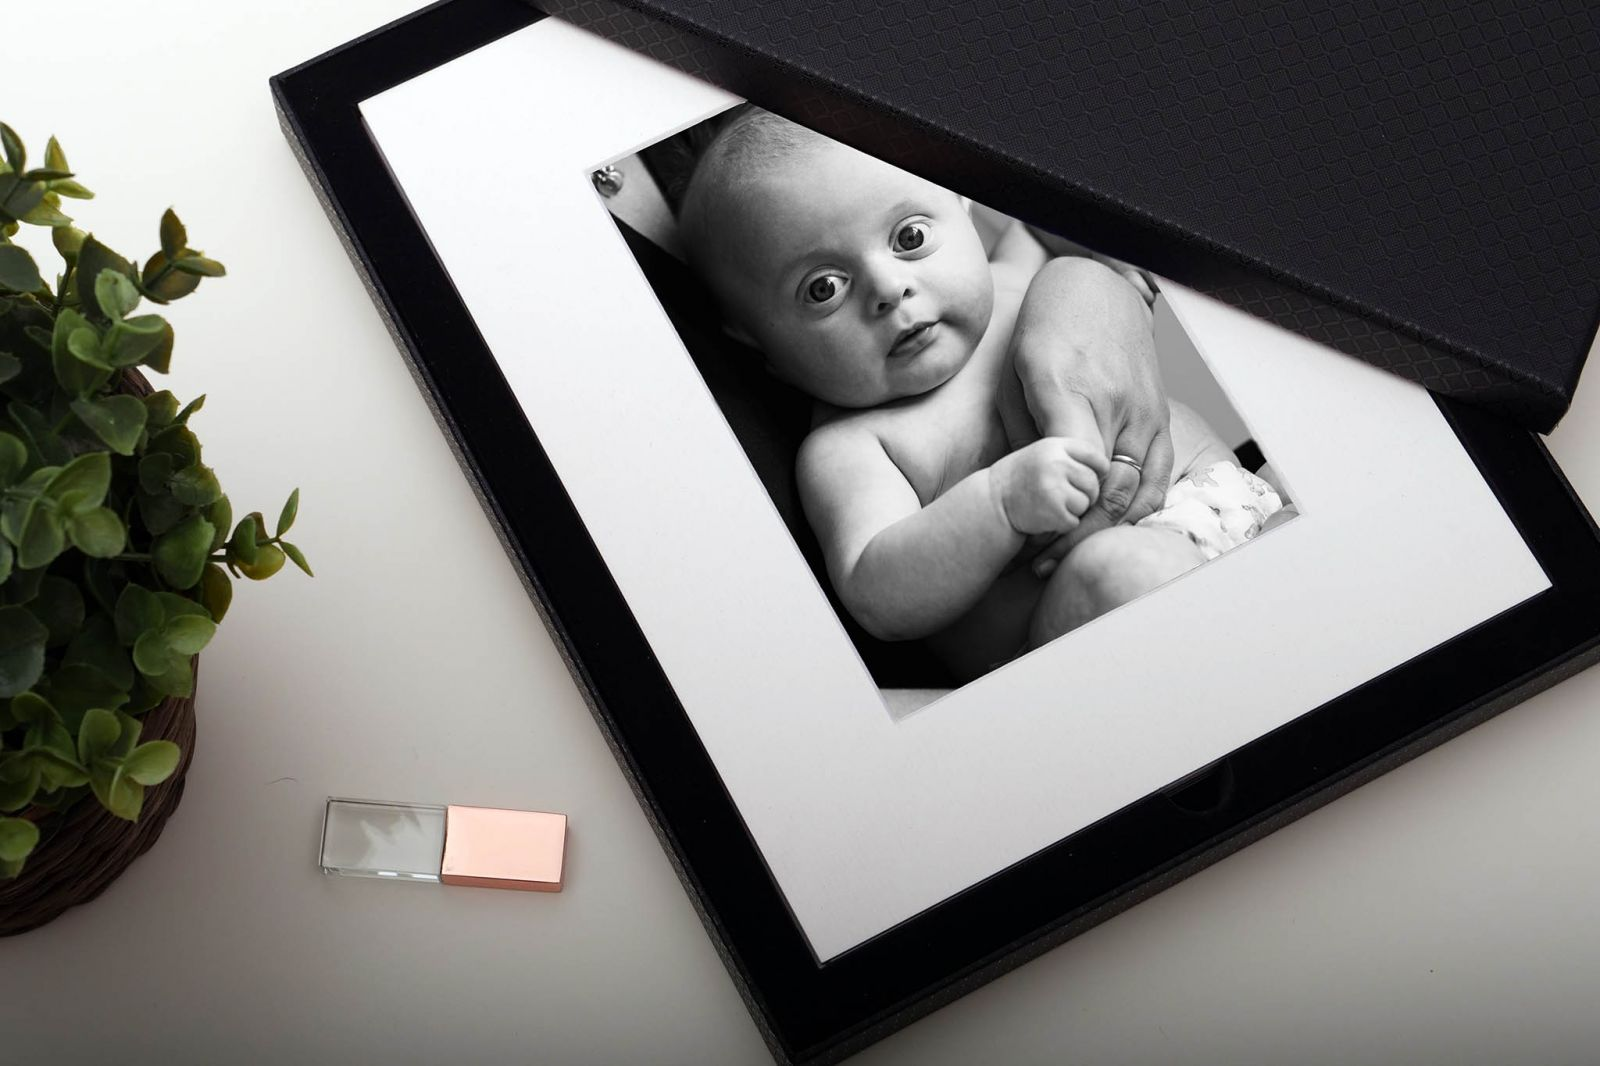 Collection of mounted fine art photos with files on usb